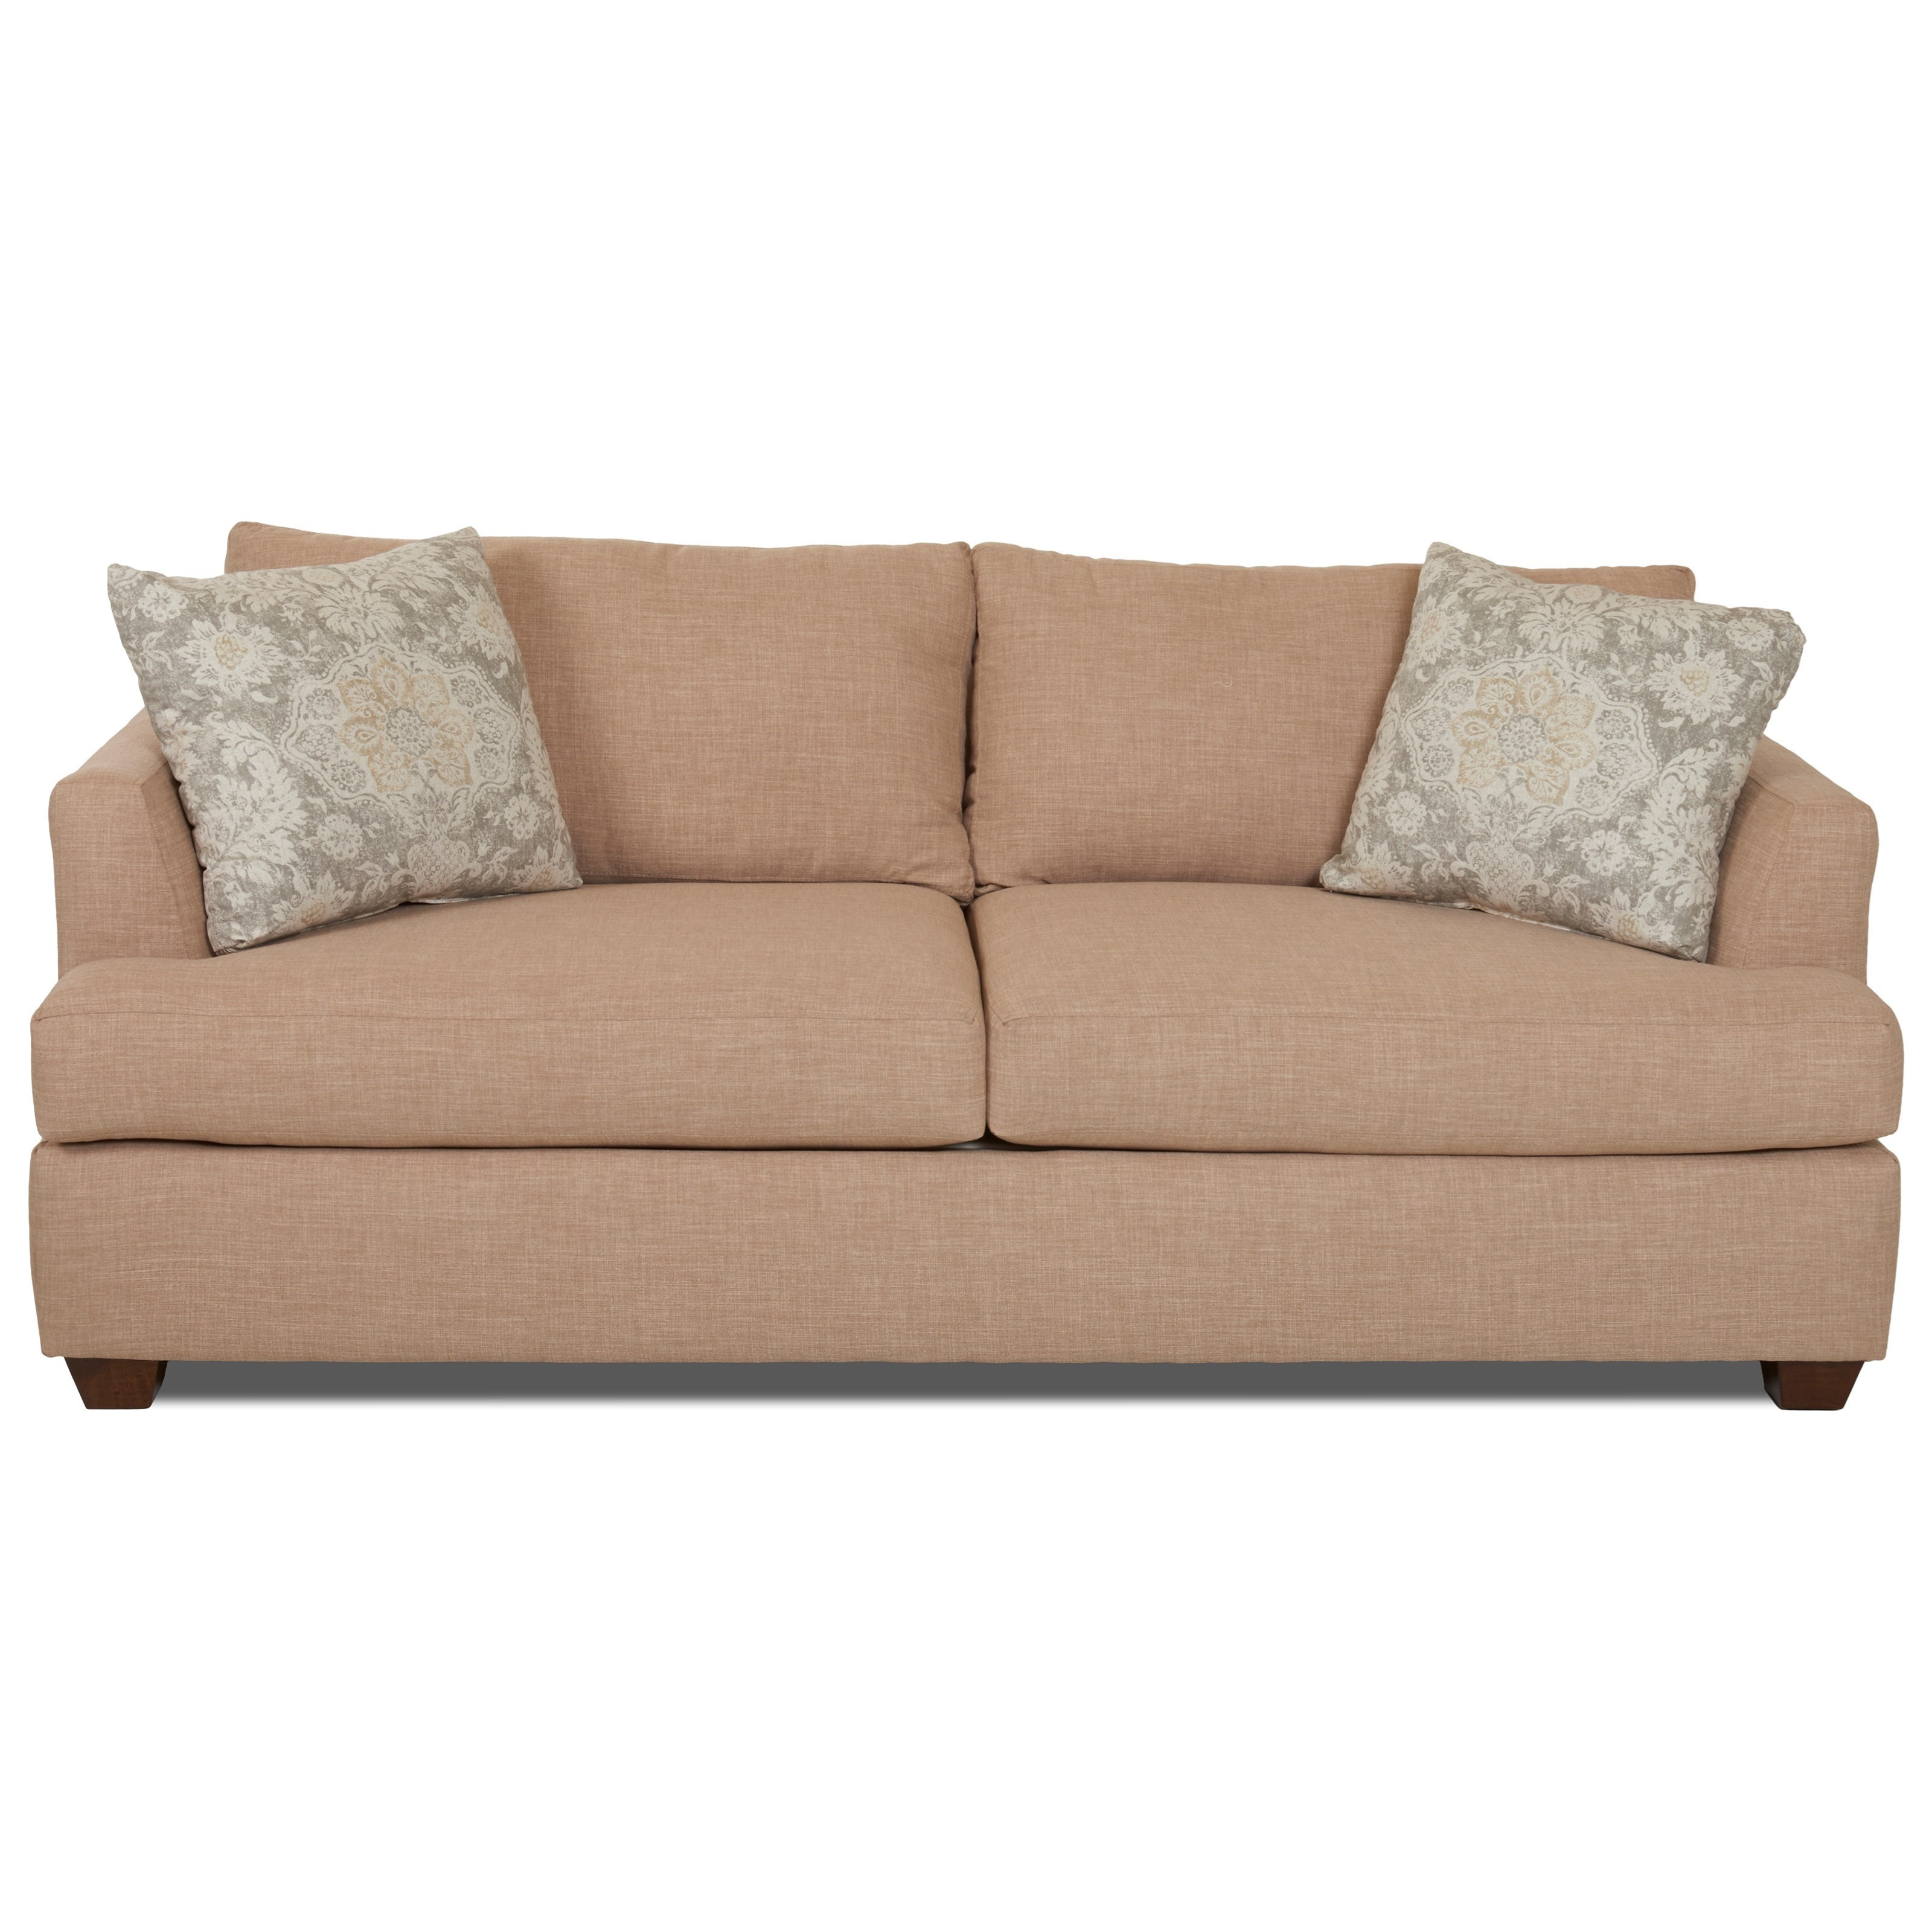 Klaussner Jack Dreamquest Queen Sleeper Sofa - Item Number: K49500 DQSL-FANDANGO FLAX